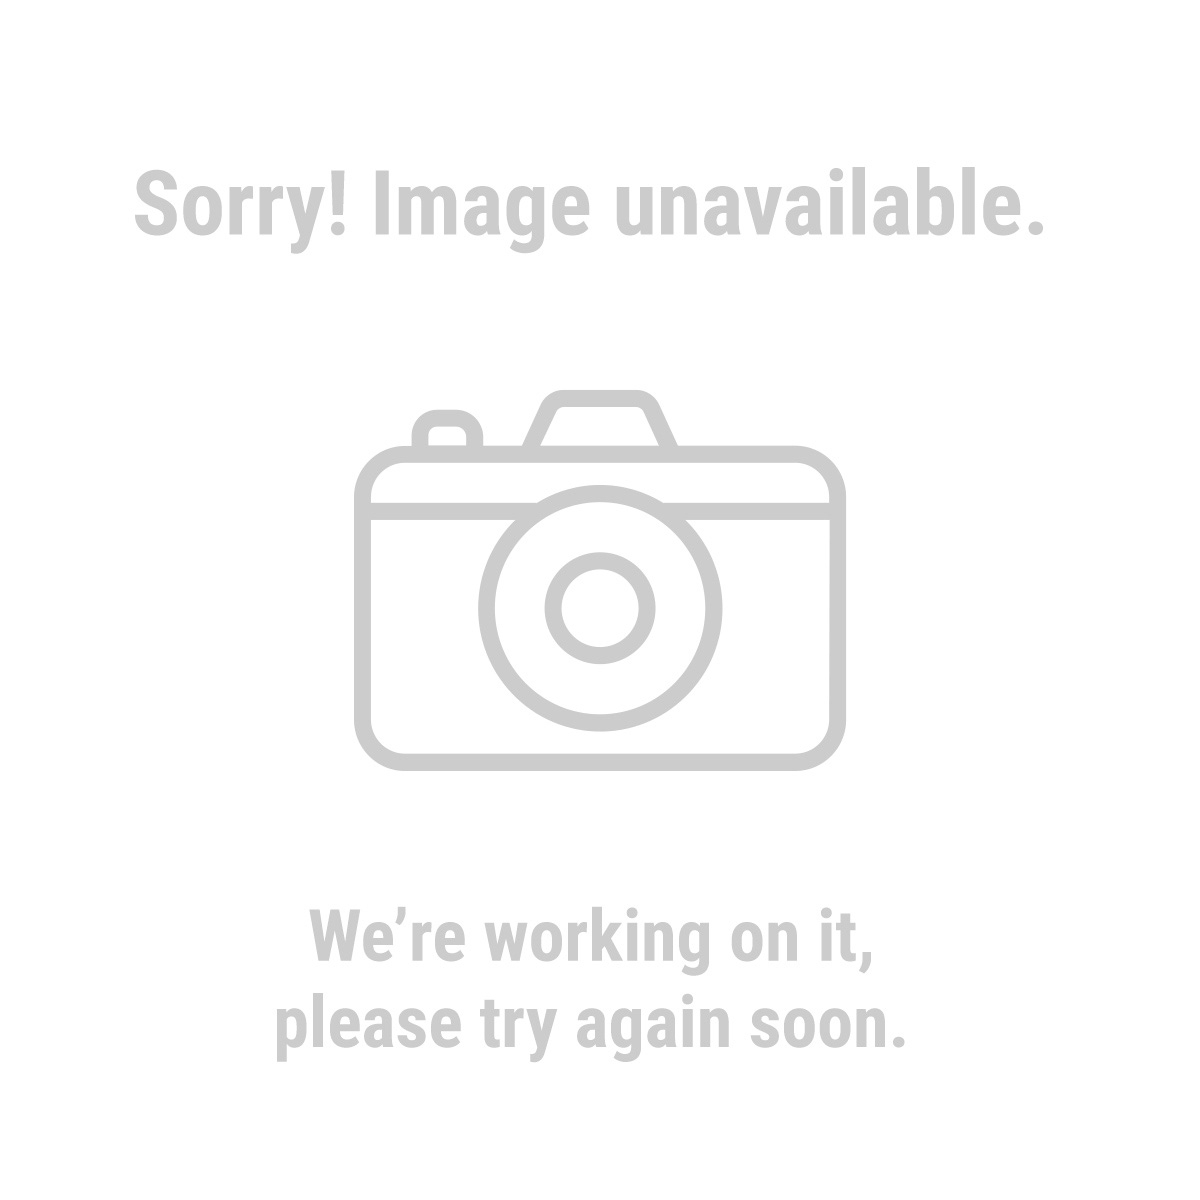 Chicago Electric Welding Systems 91110 80 Amp Inverter Arc Welder